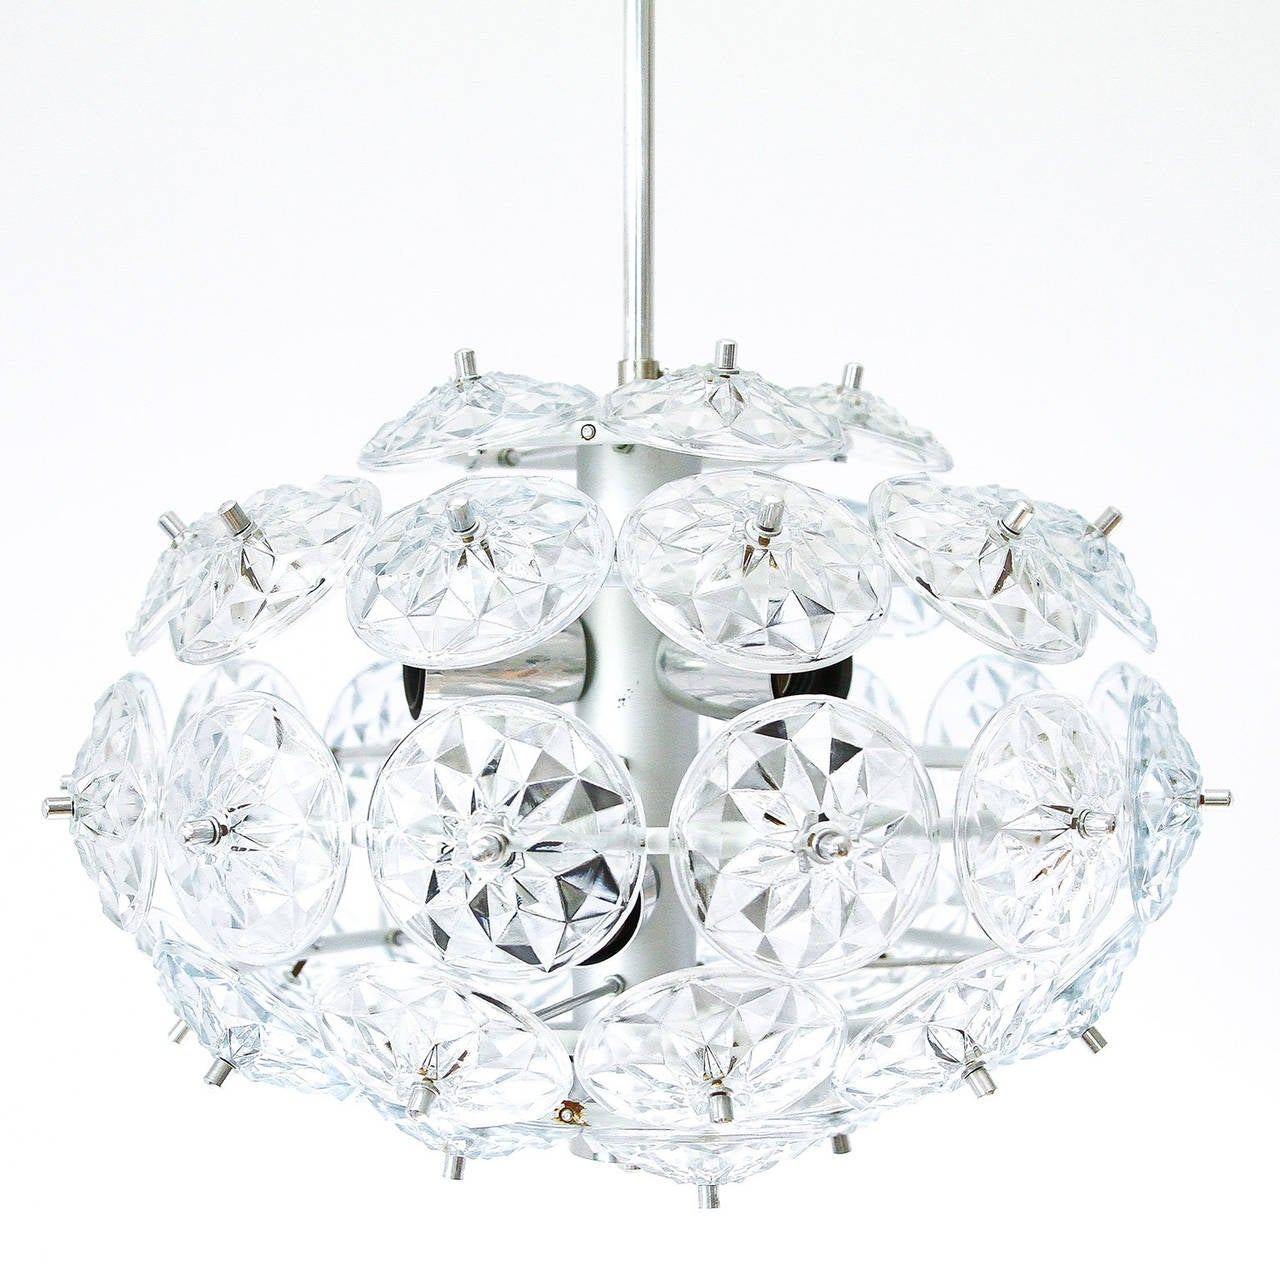 German enameled and chromed glass sputnik chandelier in the style of Kinkeldey, manufactured in Mid-Century.  It takes six medium Edison base blubs (E26 or E27) up to 40 watts per bulb.  Diameter: 17.32 in. Height: 12.6 in. (light body only